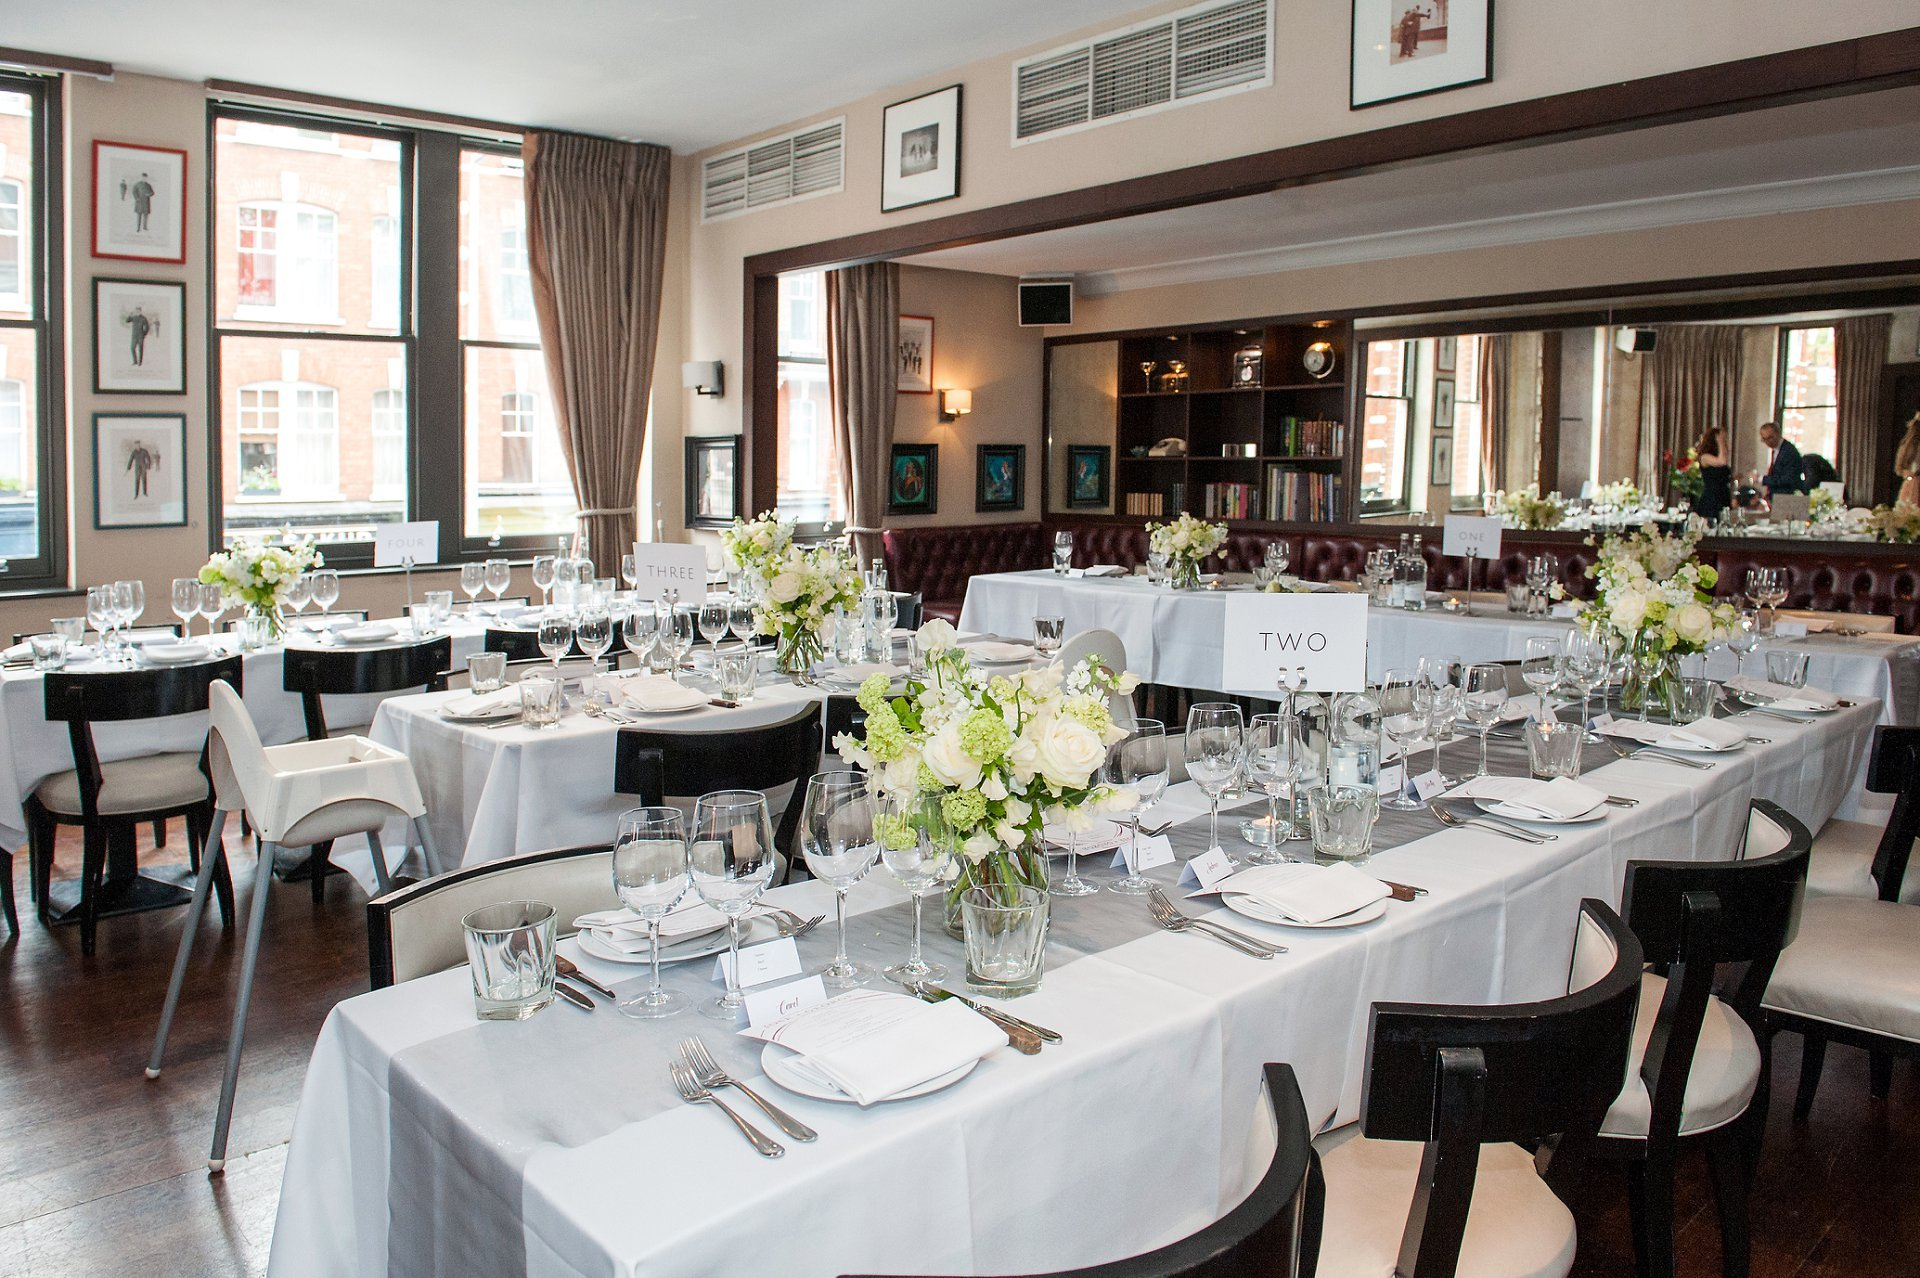 Beaufort House private Room decorated for a wedding breakfast for 30 people